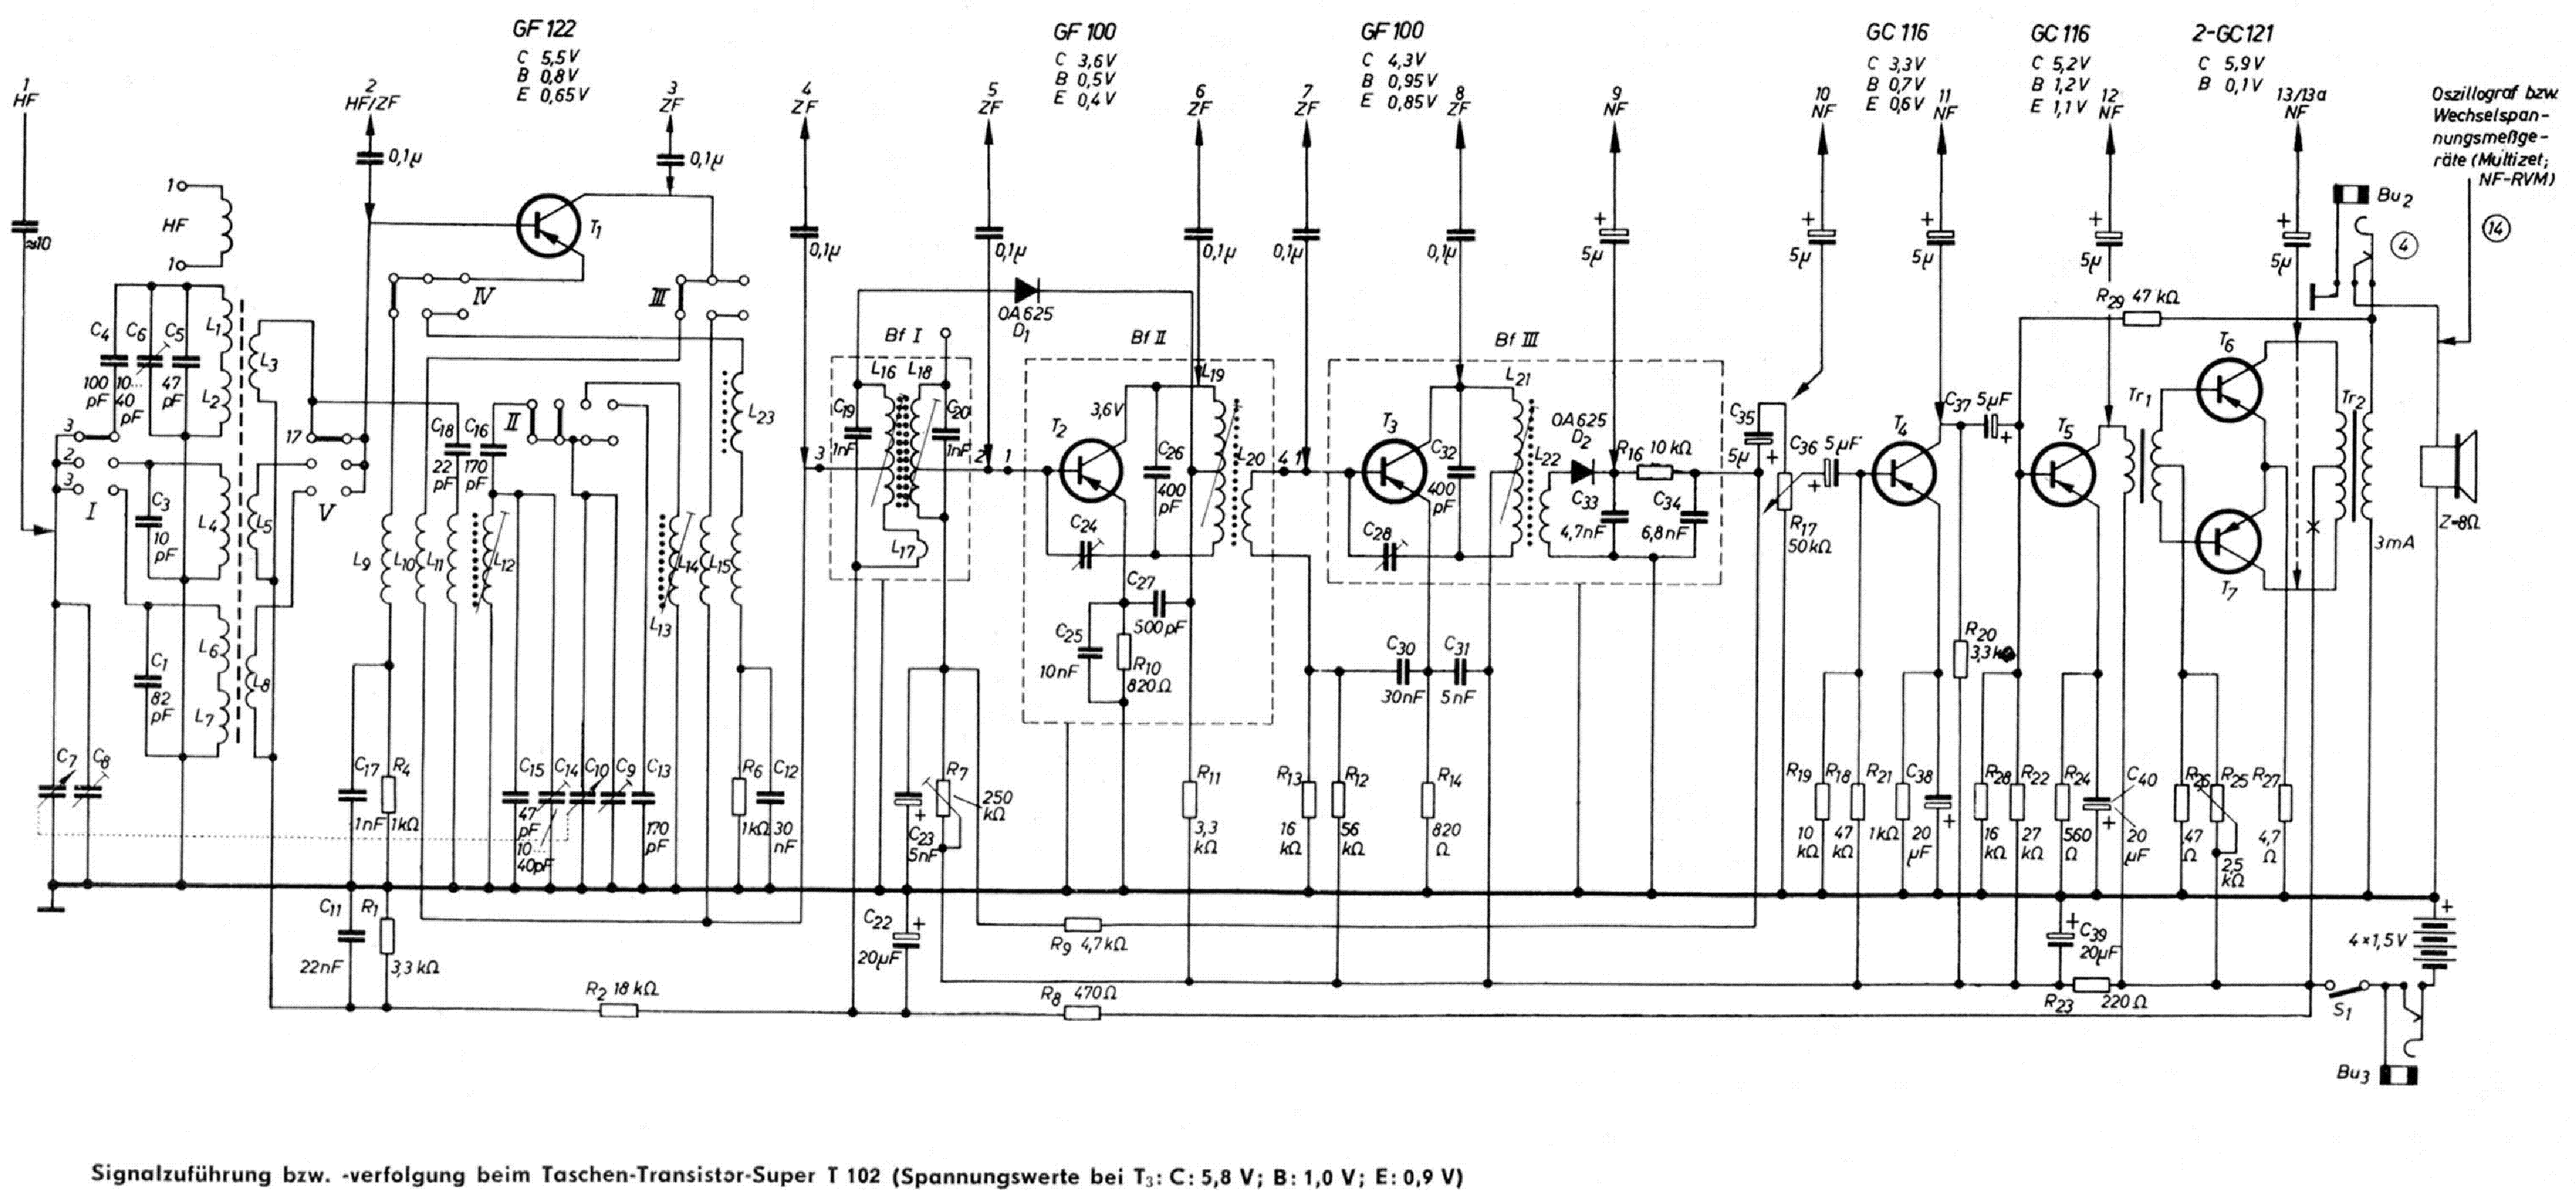 Stern Radio Rochlitz 65w 2 Rs241 Radio Sch Service Manual Download Schematics Eeprom